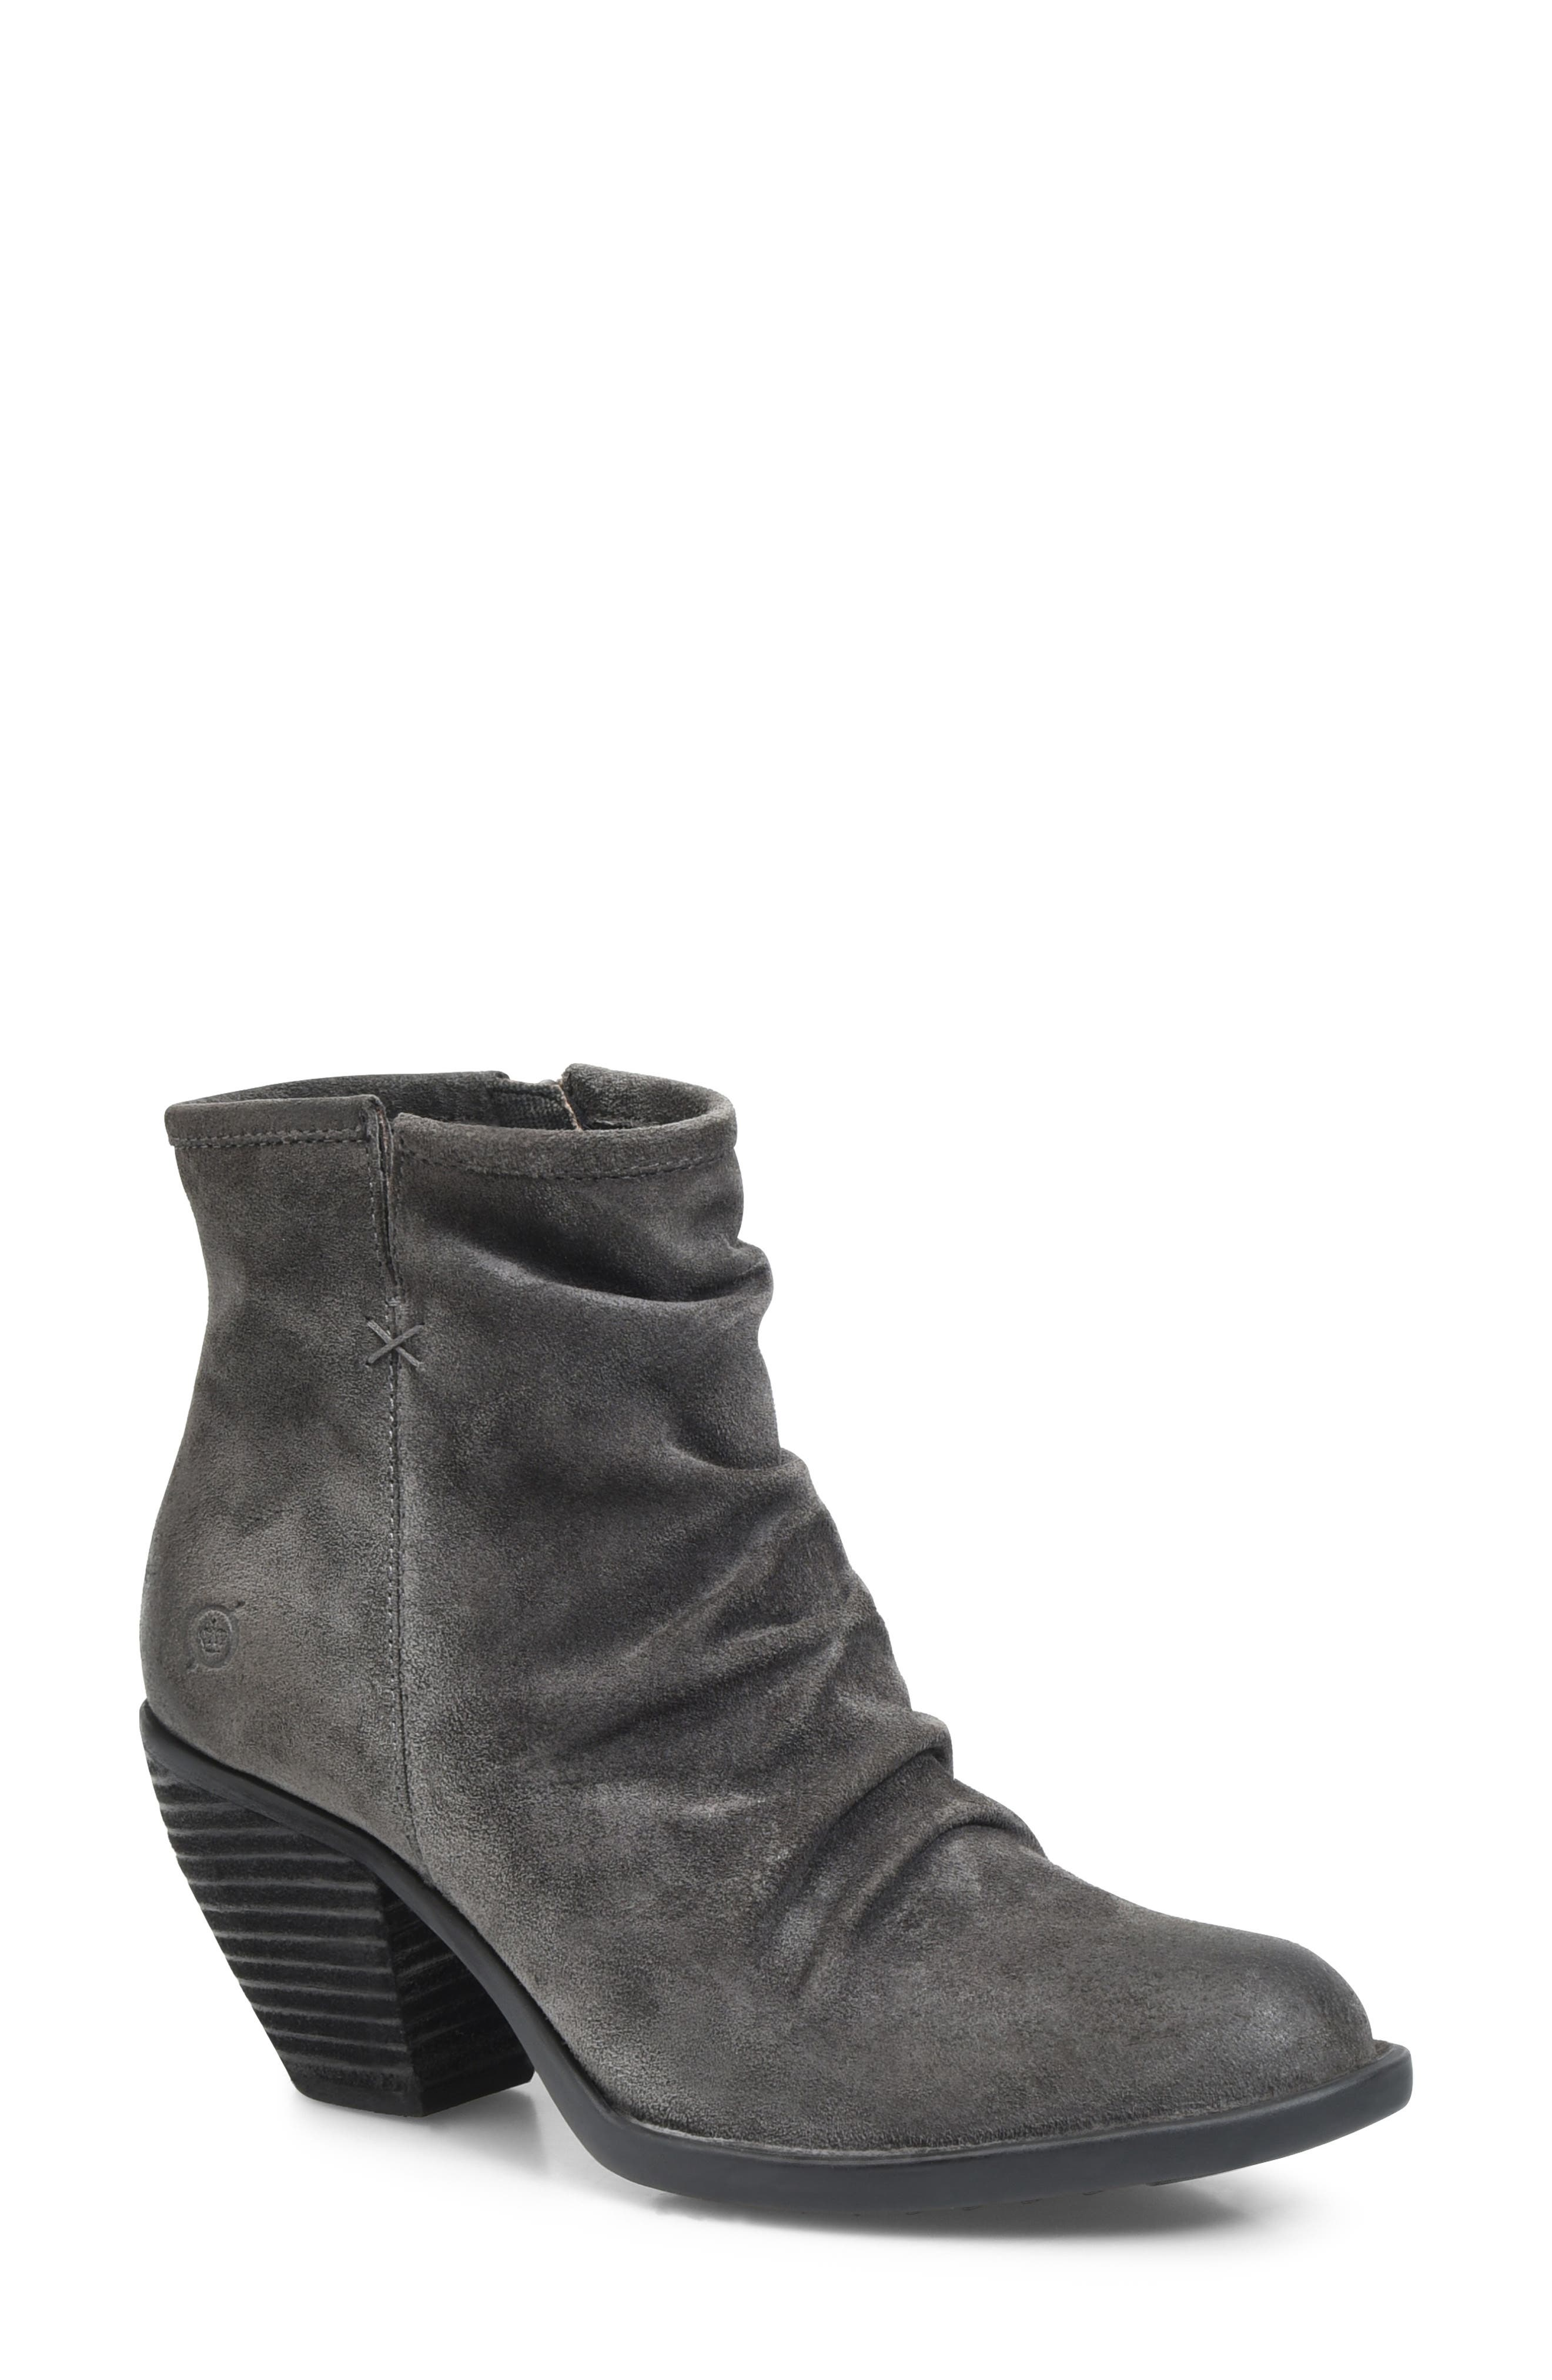 B?rn Aire Bootie- Grey